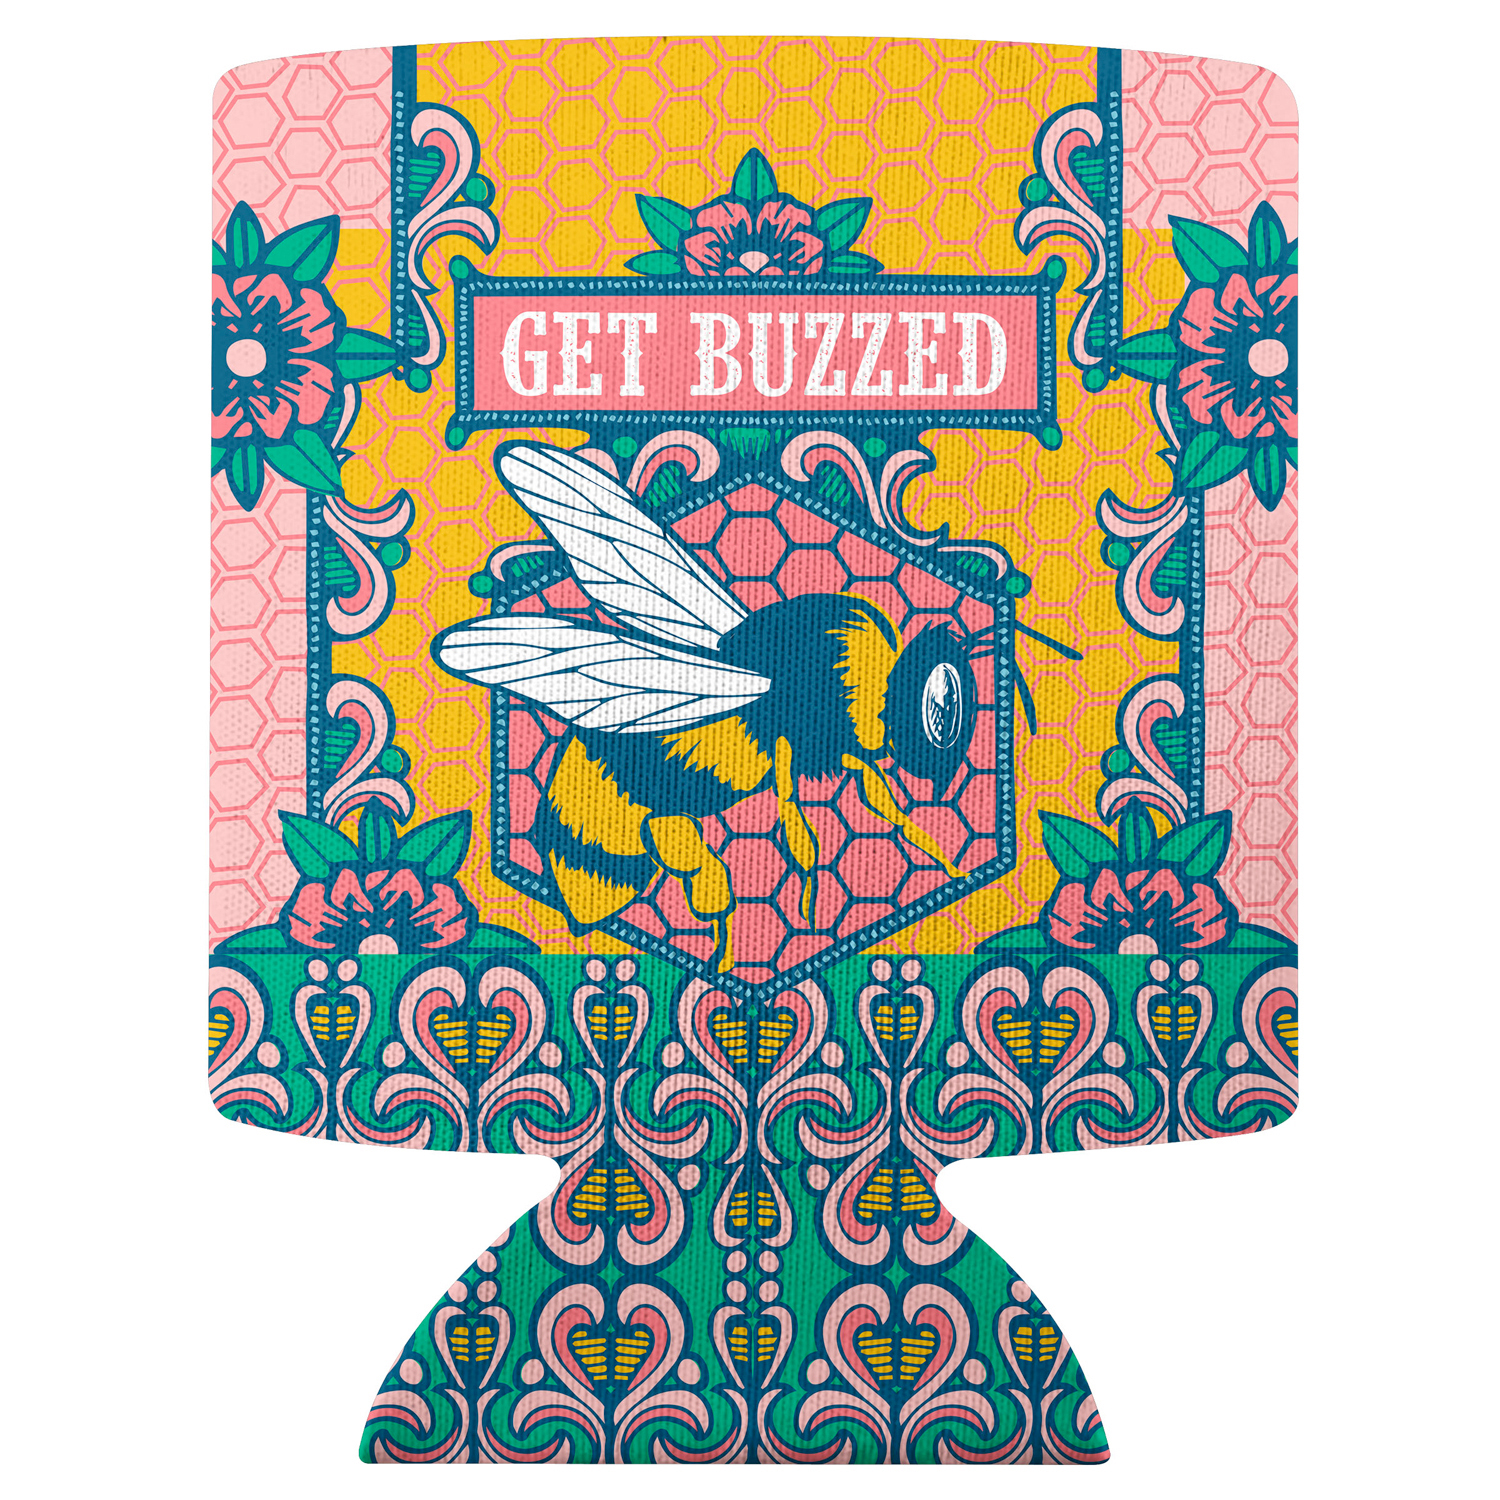 Get Buzzed Bee Can Cooler